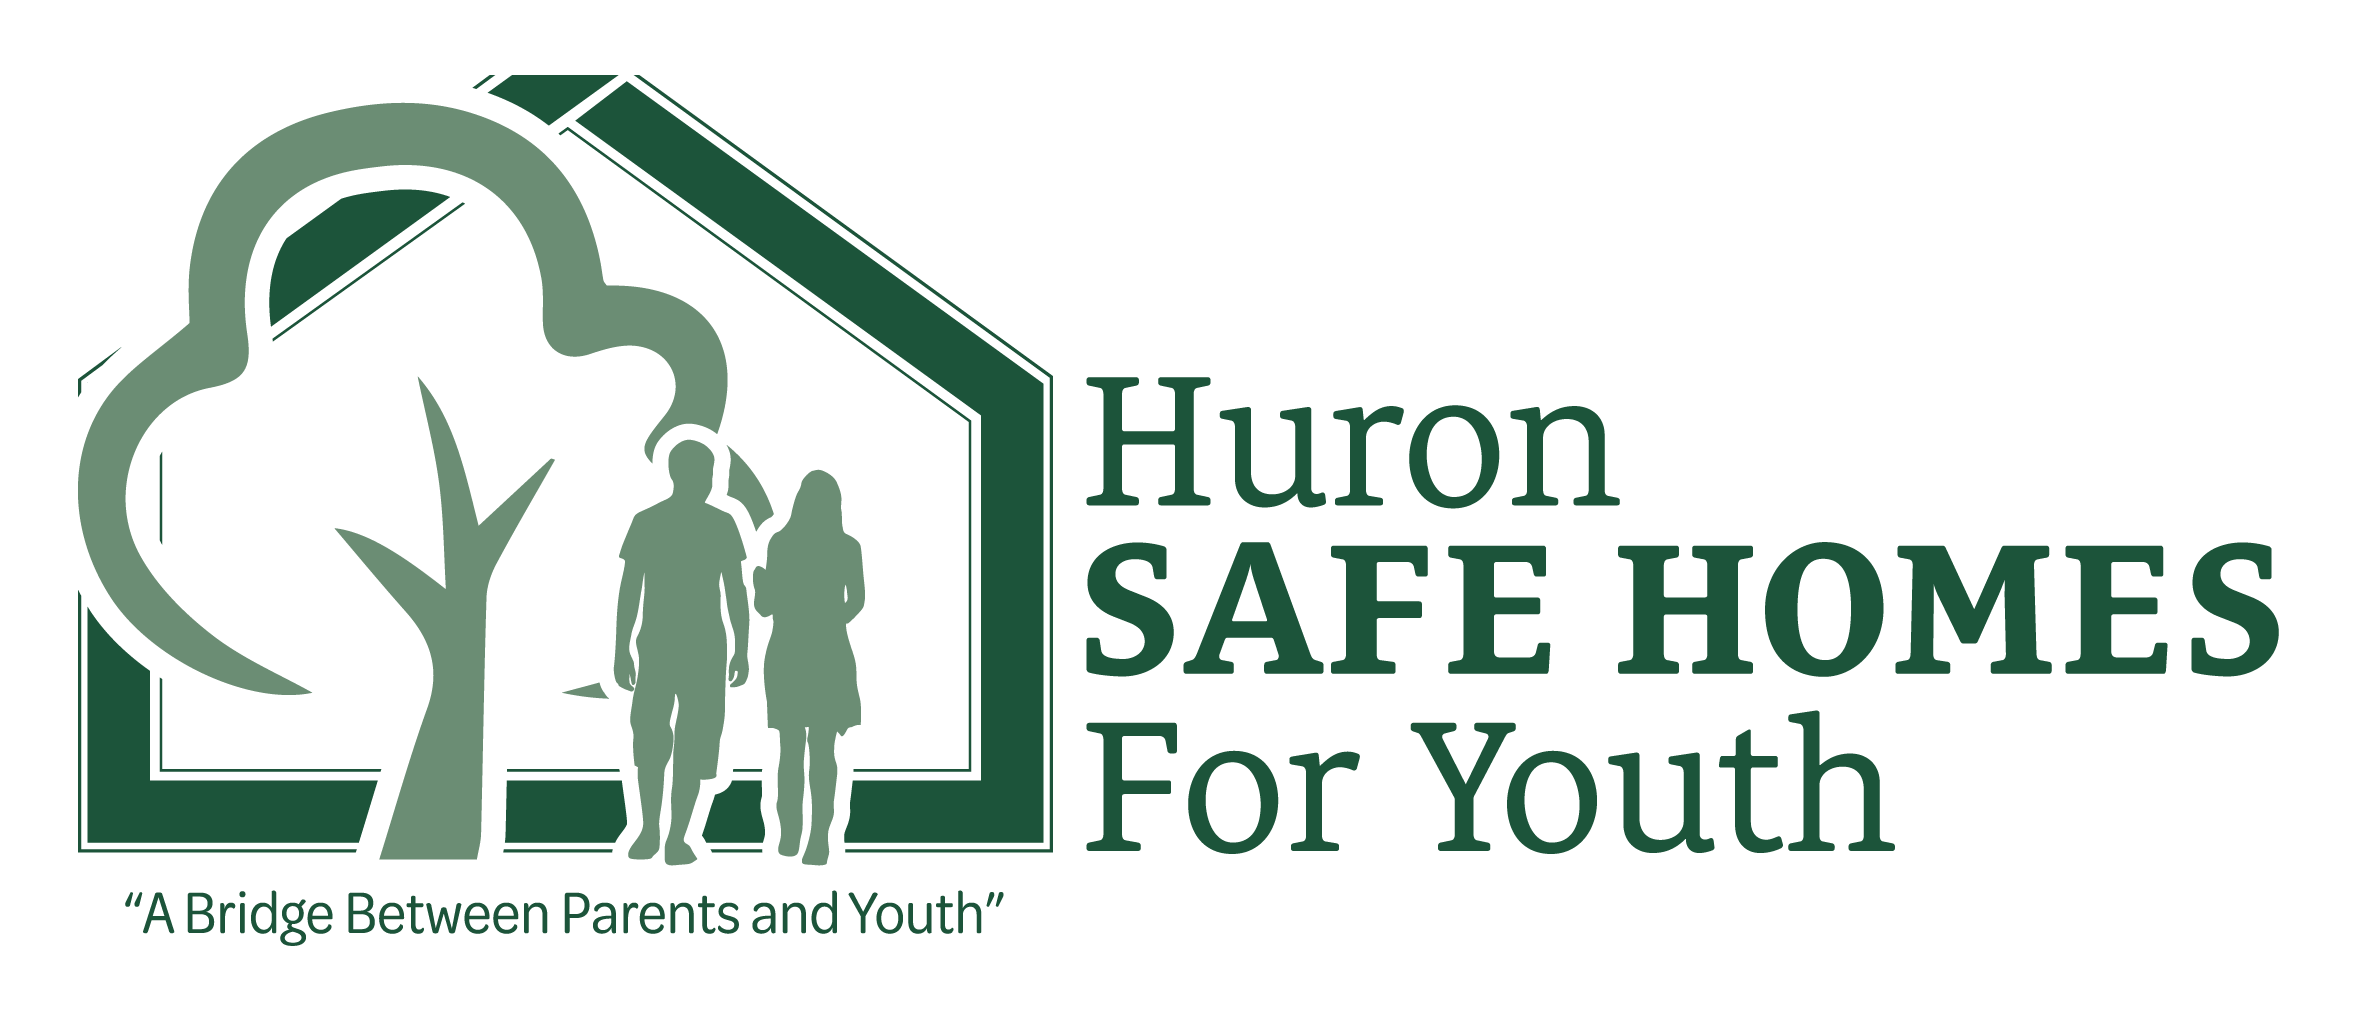 Huron Safe Homes for Youth